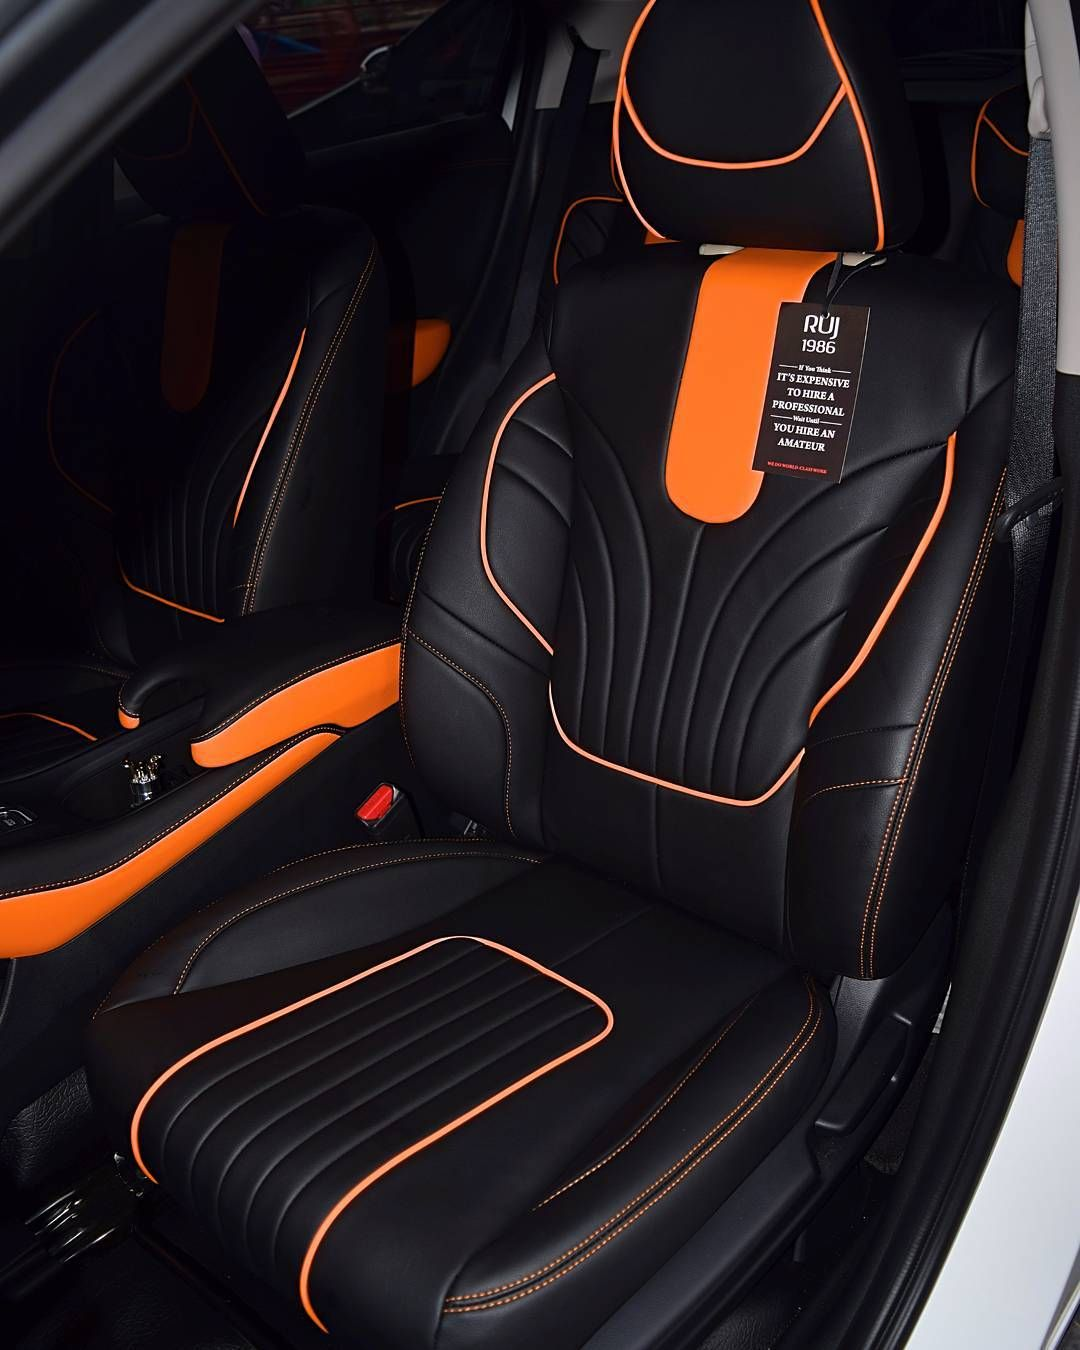 honda hr v full interior using lederlux synthetic leather orange and black auto addiction. Black Bedroom Furniture Sets. Home Design Ideas